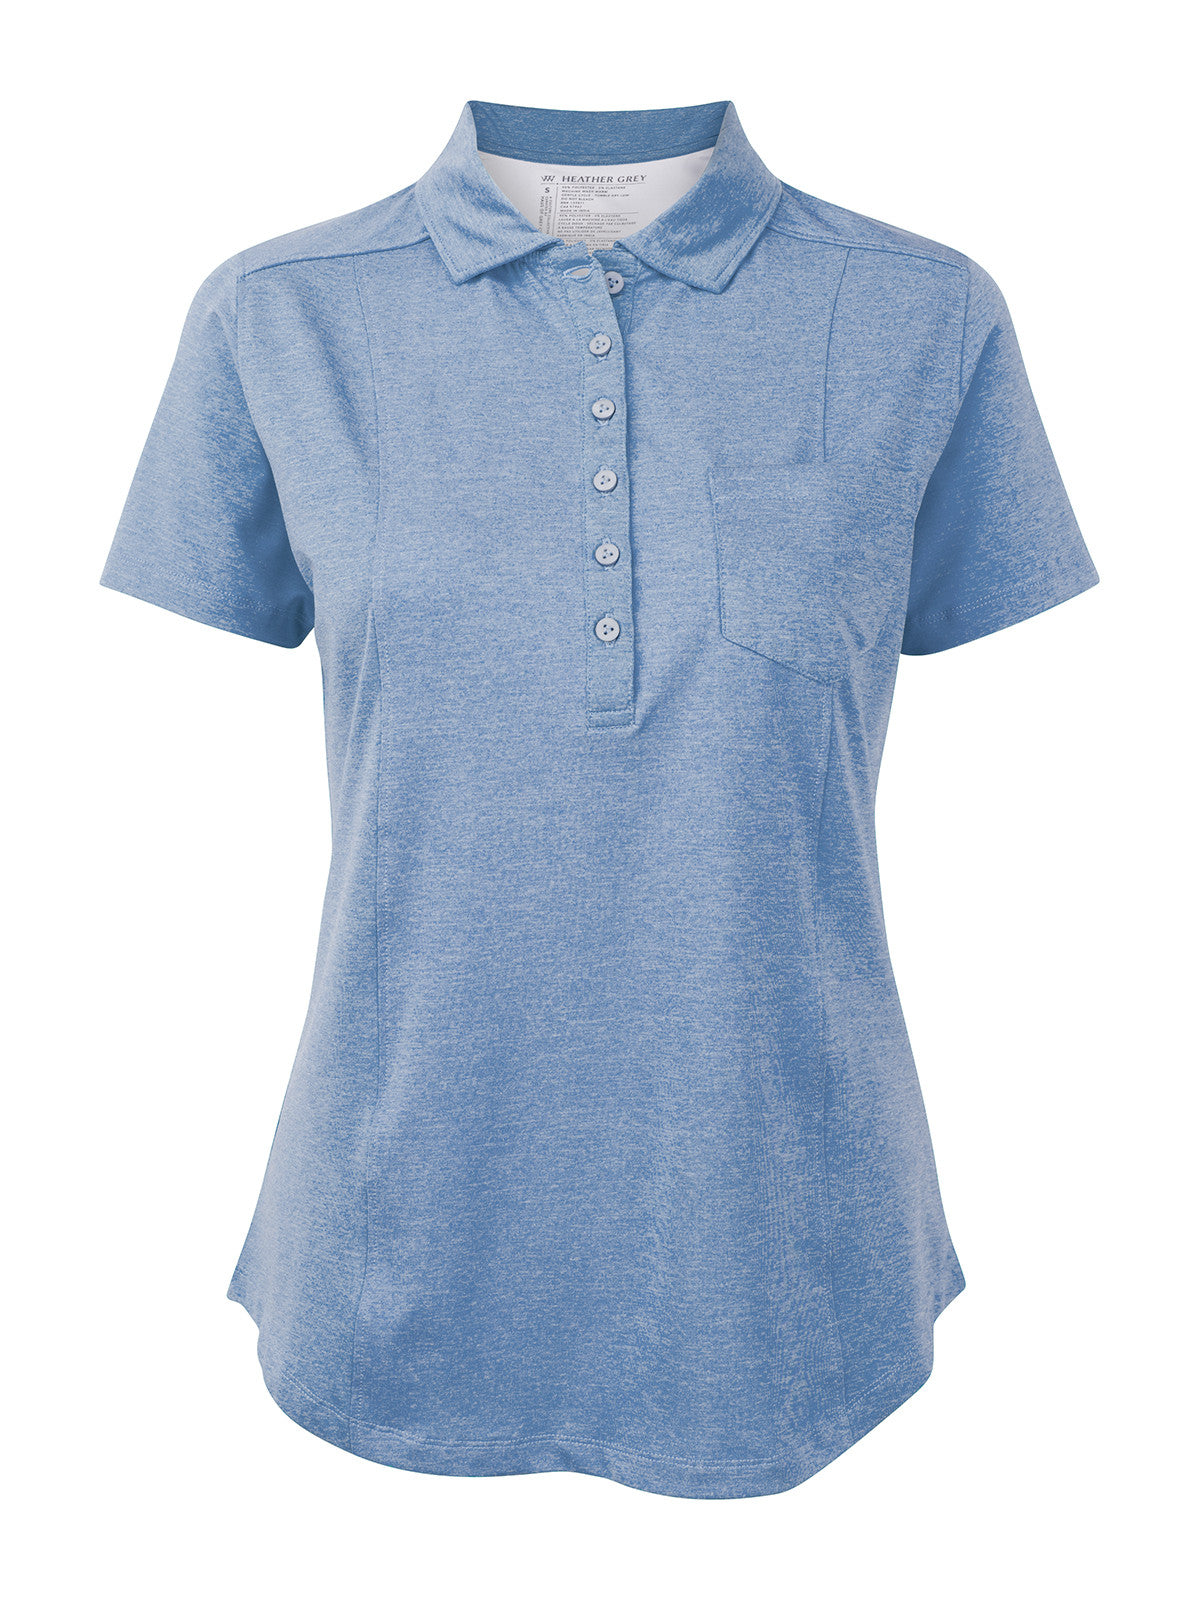 69045233dae1 Heather Grey Women s Tiffany Short Sleeve Polo in Cornflower   White ...